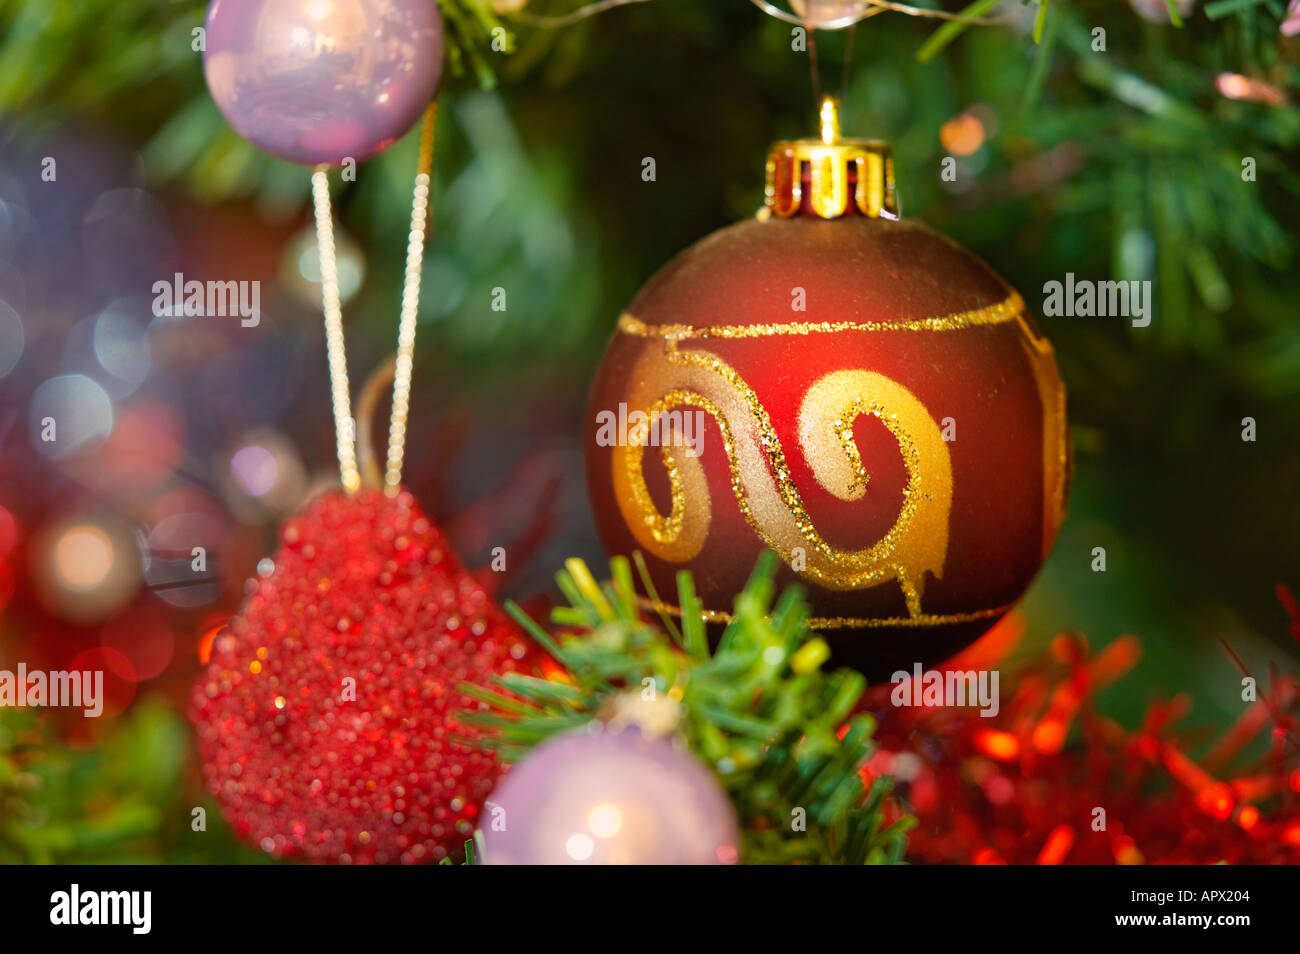 Christmas tree bauble decorations - Stock Image